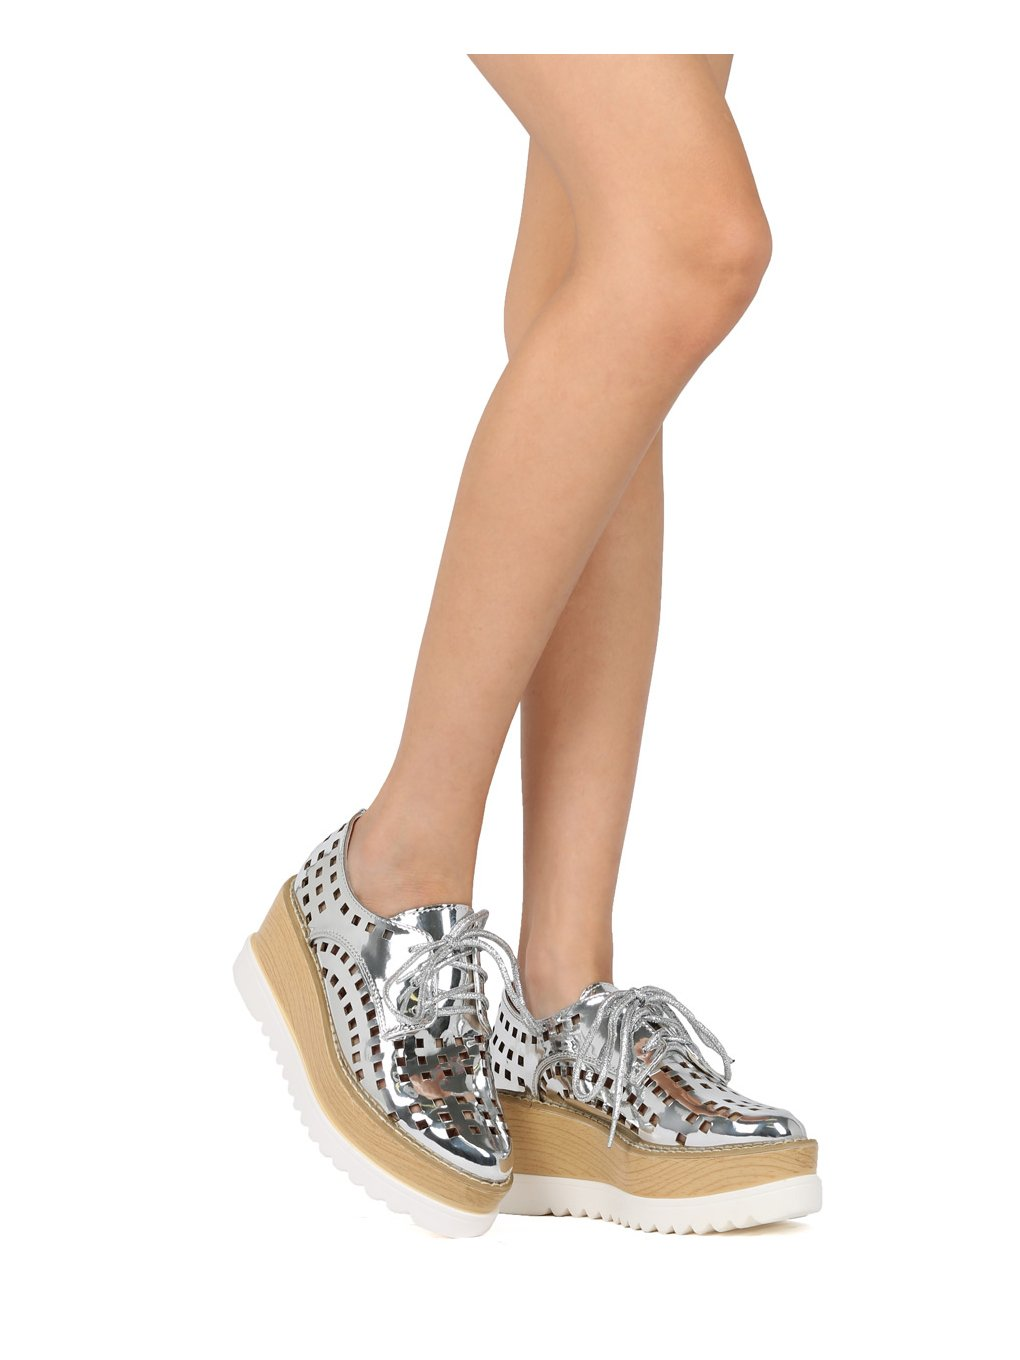 Alrisco Women Perforated Pointy Lace Up Double Stacked Platform Spectator Creeper HF54 - Silver Metallic (Size: 7.0) by Alrisco (Image #3)